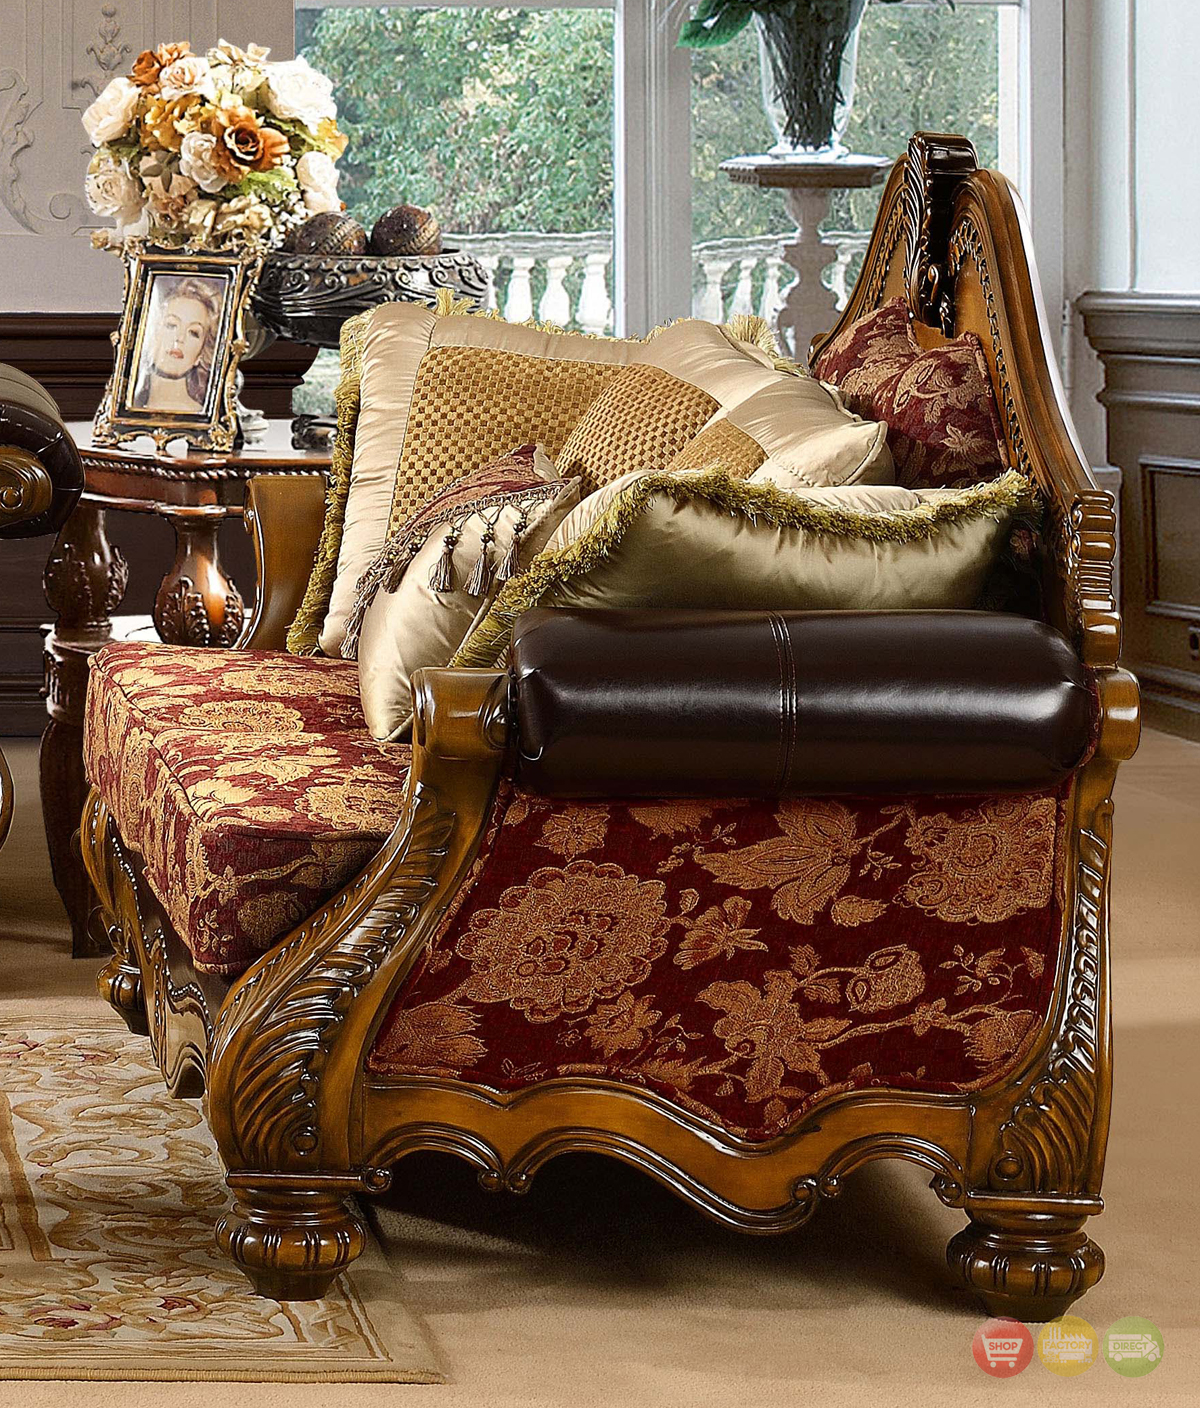 Fine Living Room Furniture: Luxury Formal Living Room Furniture W/ Carved Wood HD-481